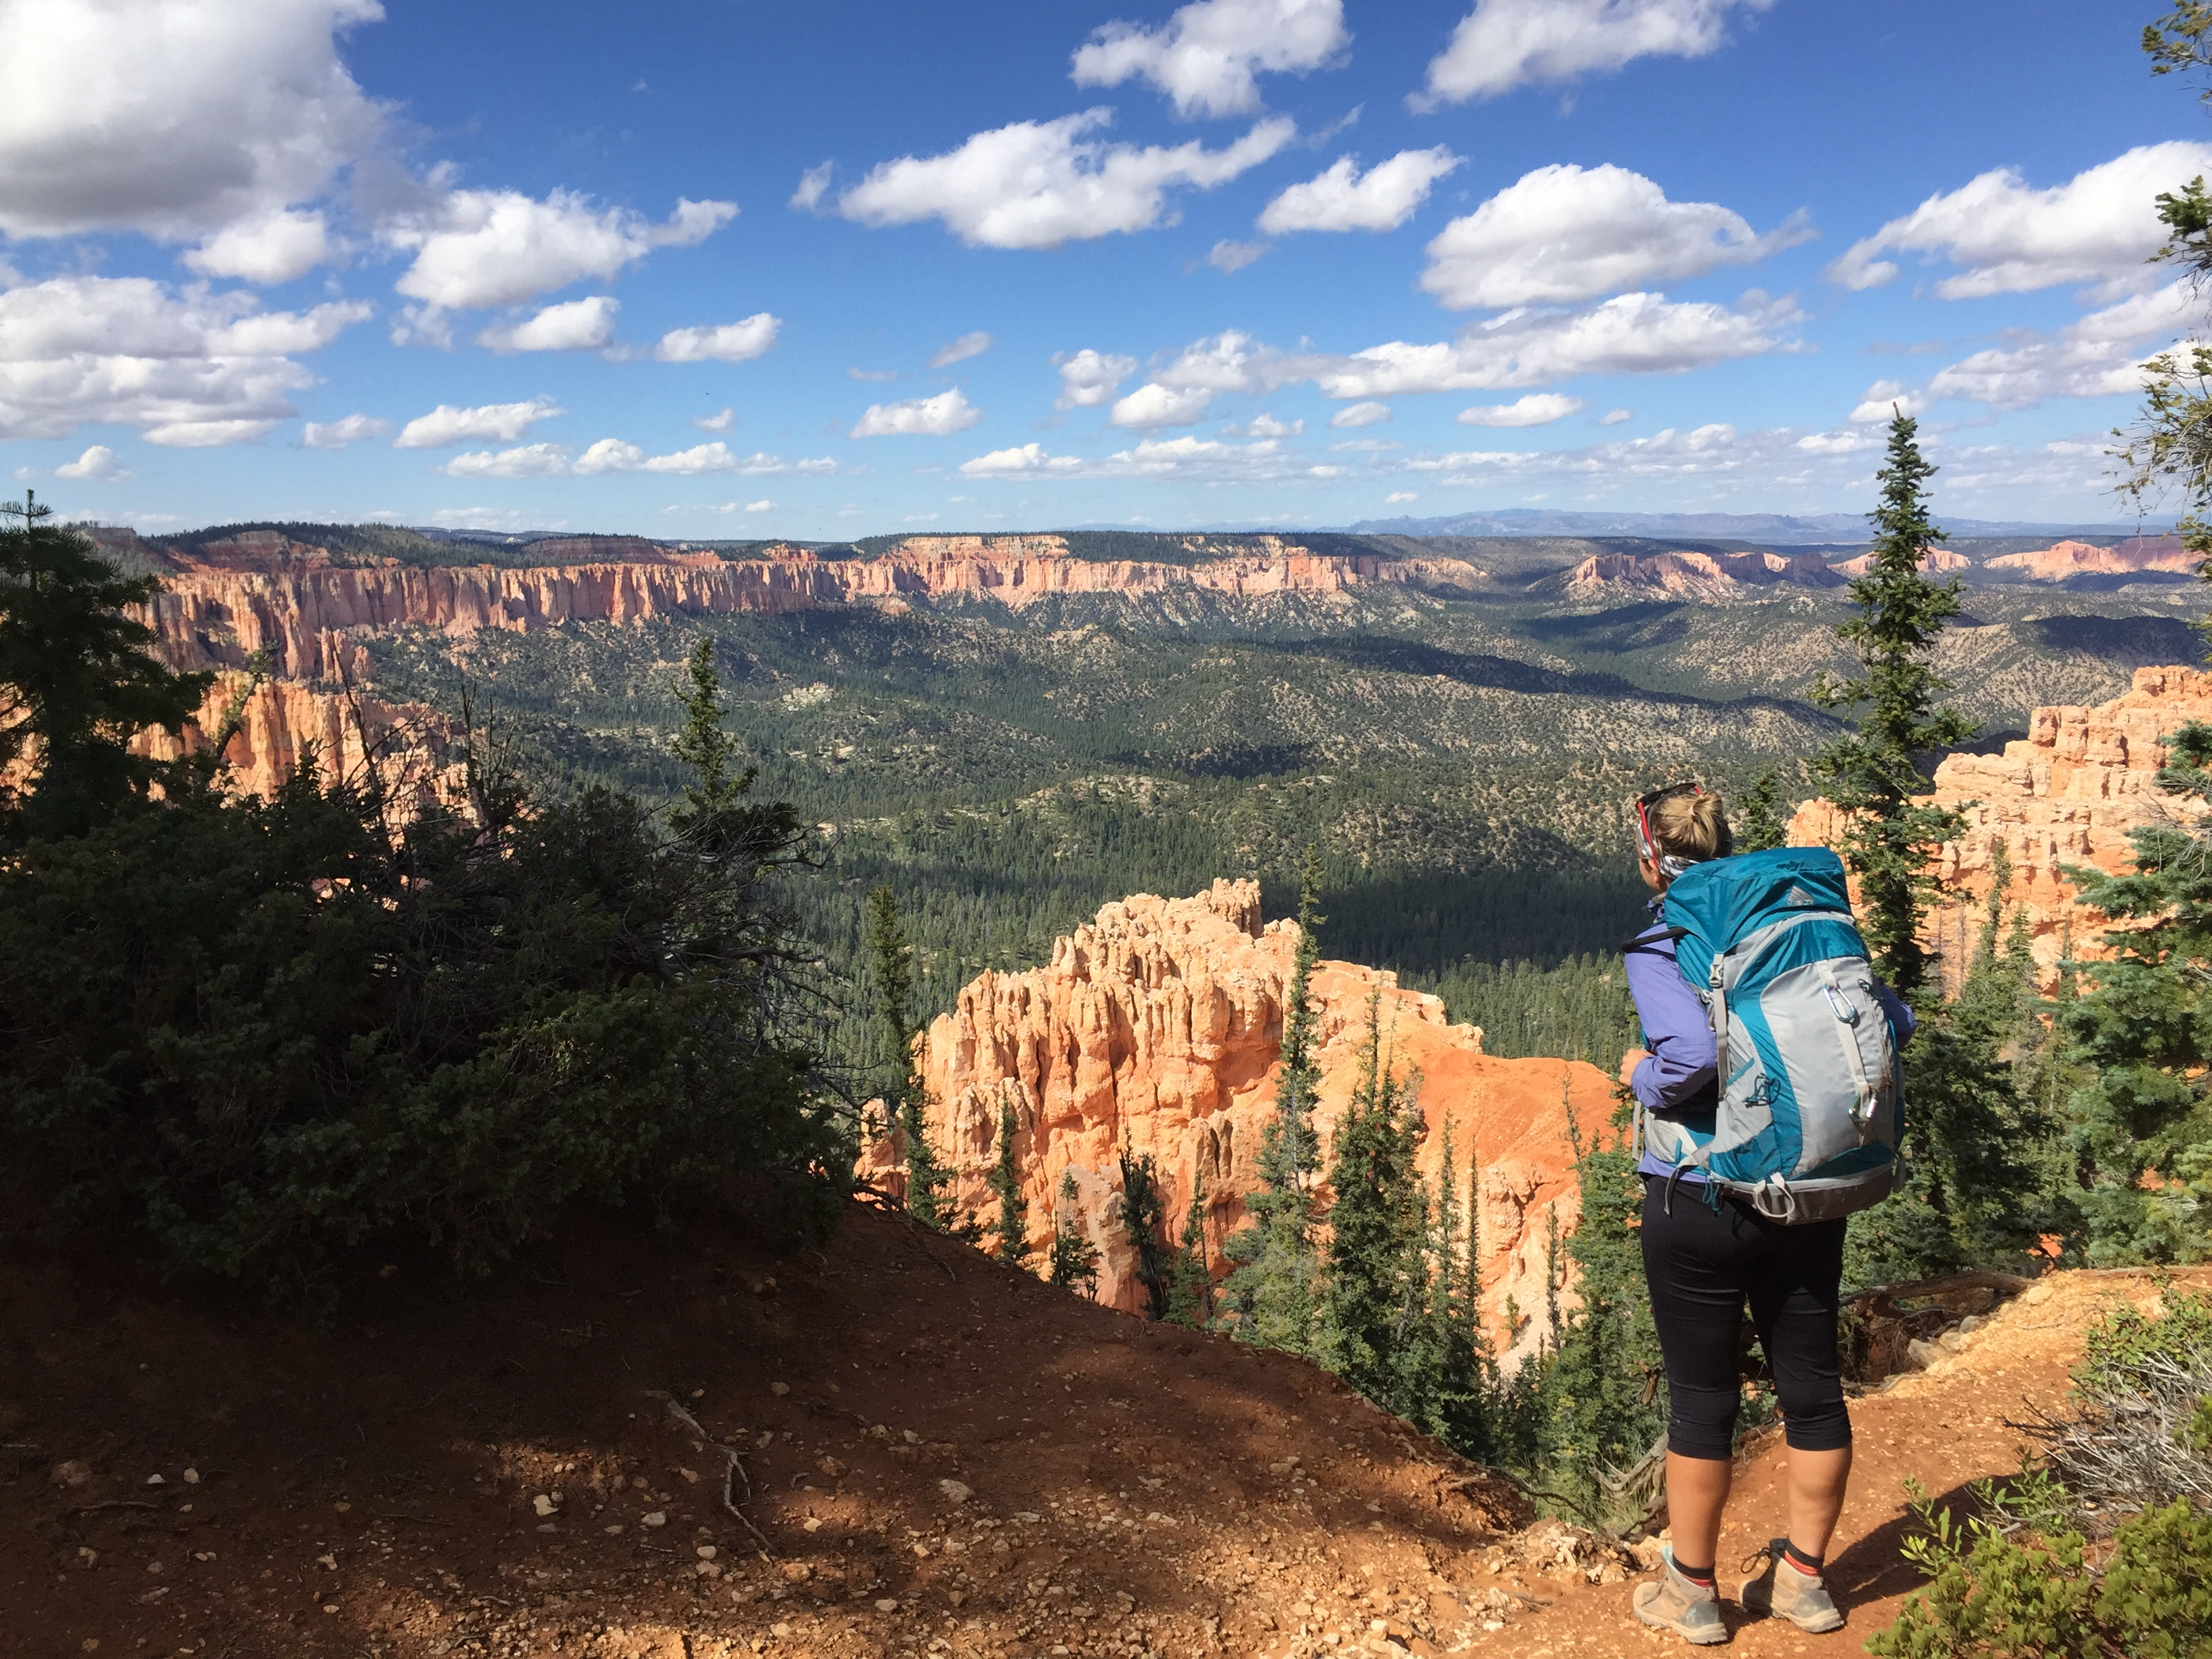 VIDEO: Bryce Canyon National Park